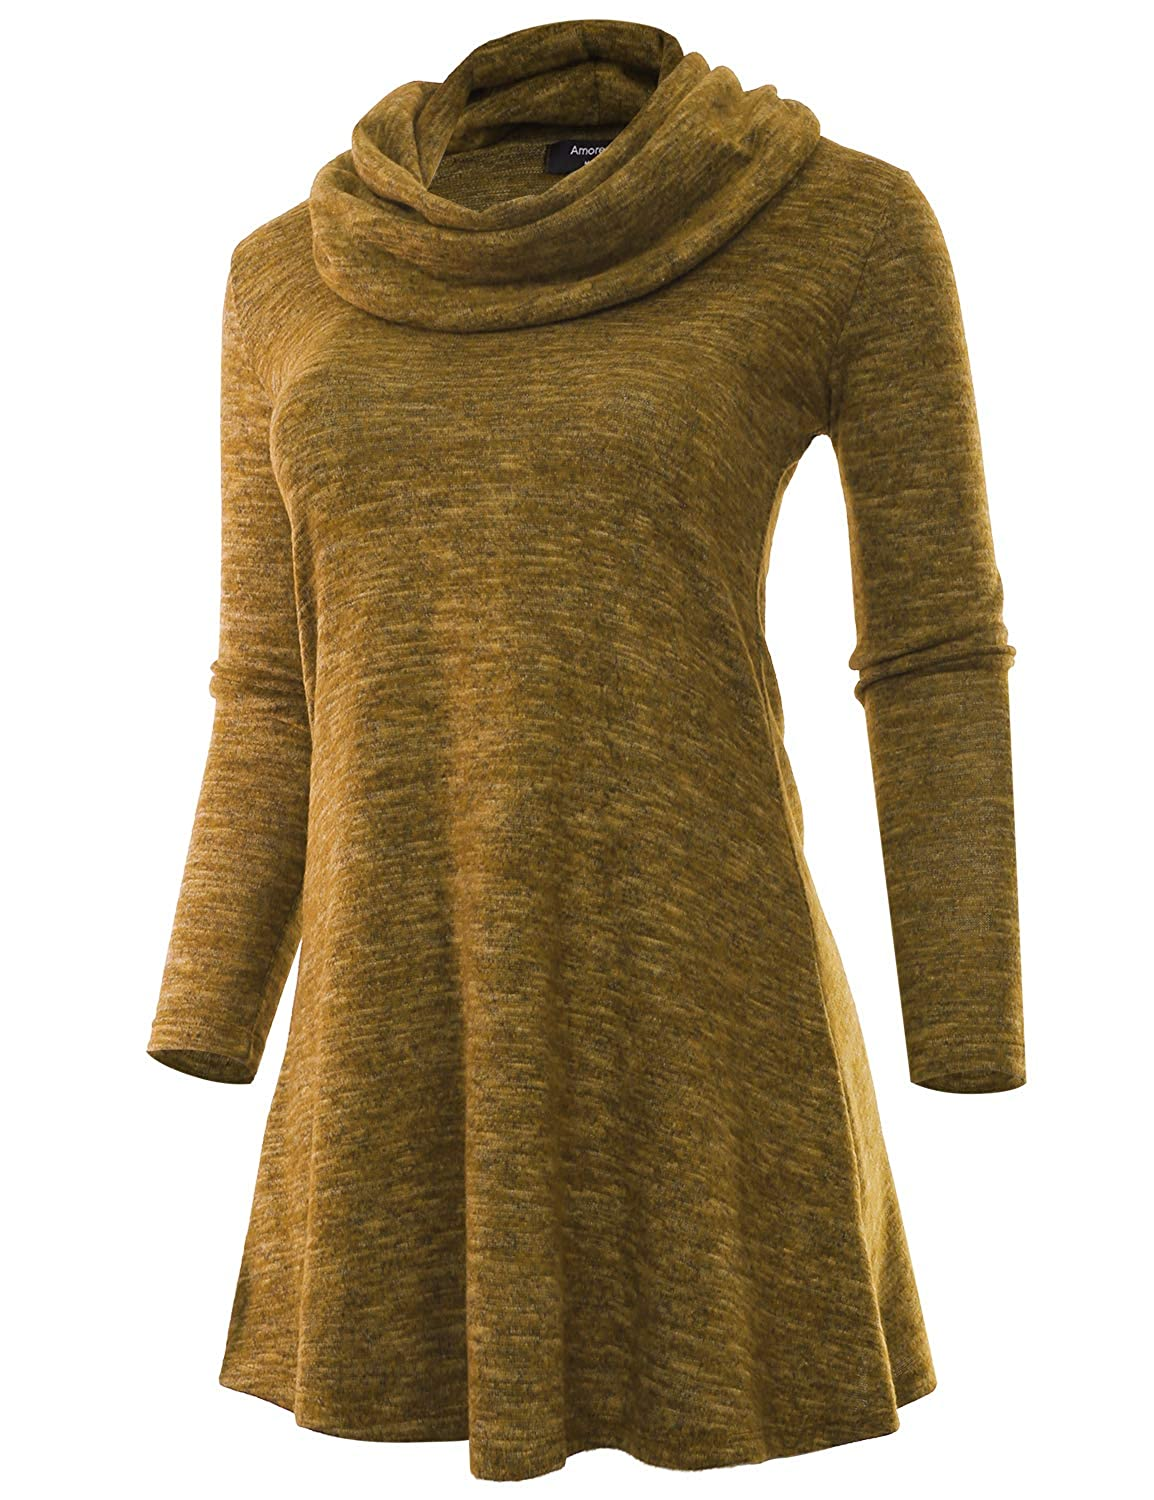 e1ac44c999f Amazon.com  A.F.Y Women s Marled Cowl Neck Plus Size Tunic Sweater Dress  (Made in USA) Mustard XX-Large  Clothing